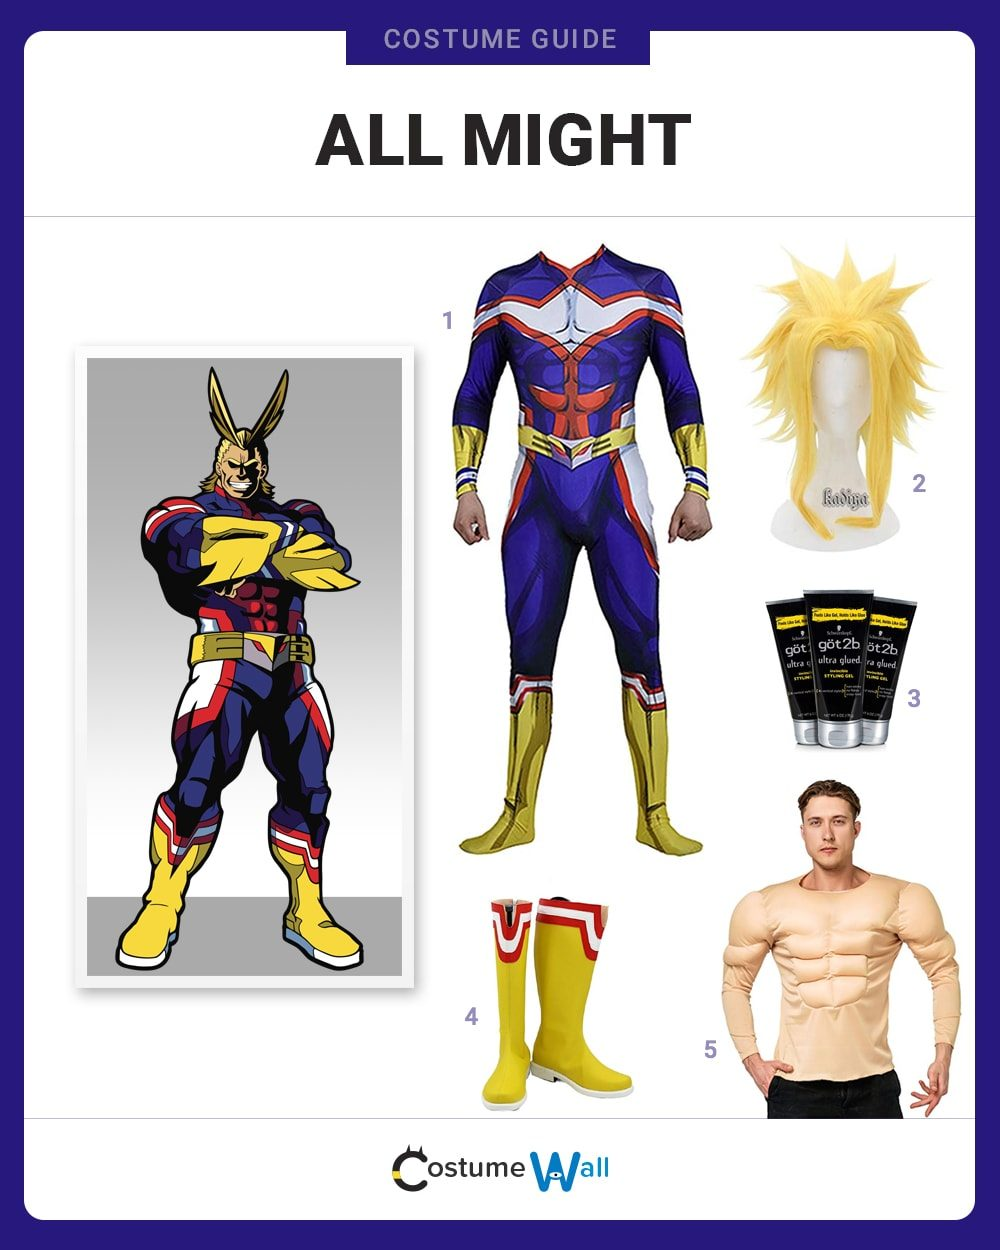 All Might Costume Guide